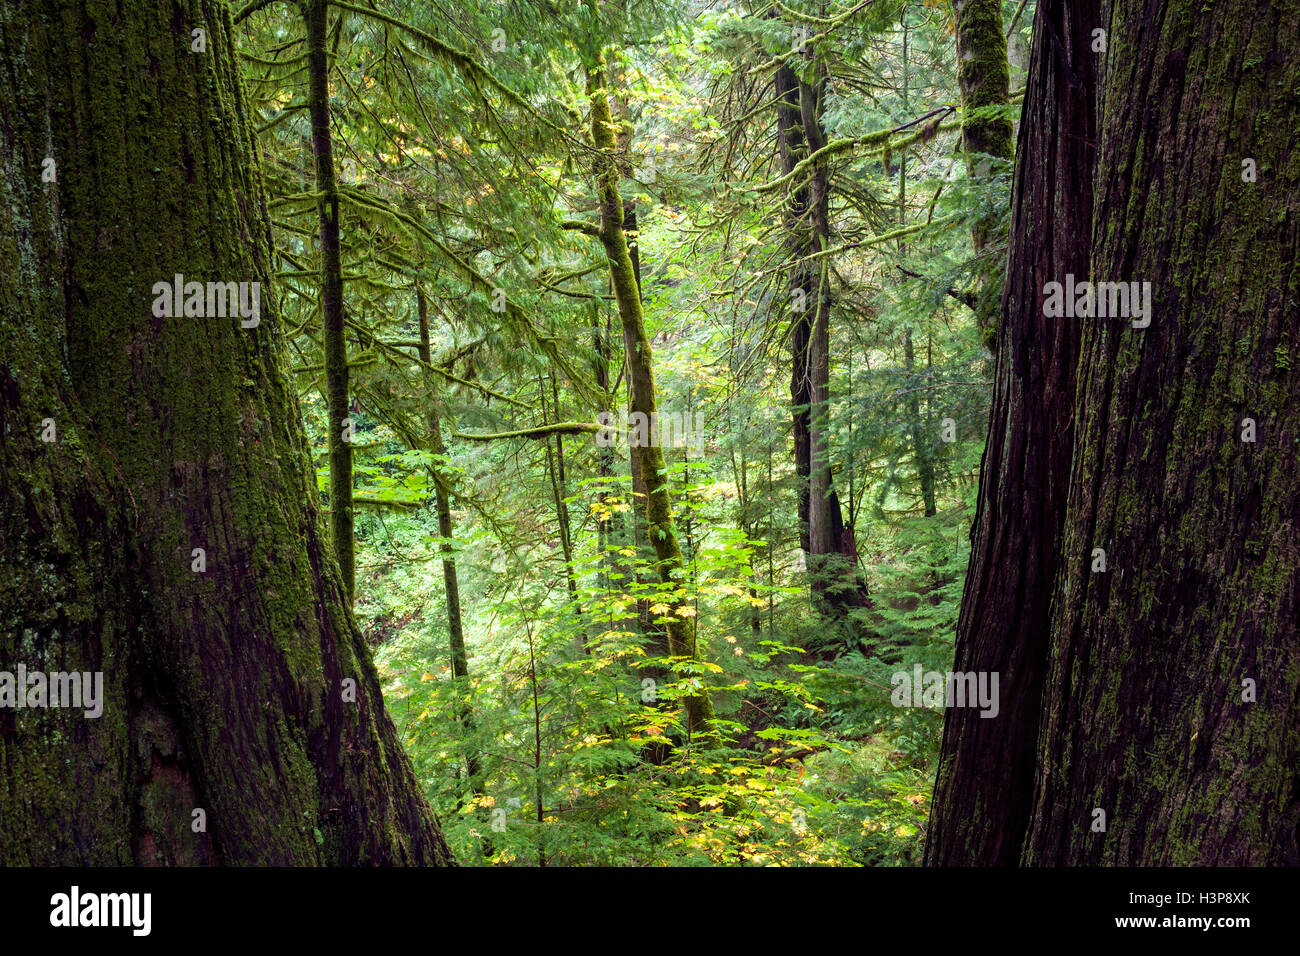 Elk Falls Provincial Park and Protected Area - Campbell River, Vancouver Island, British Columbia, Canada - Stock Image